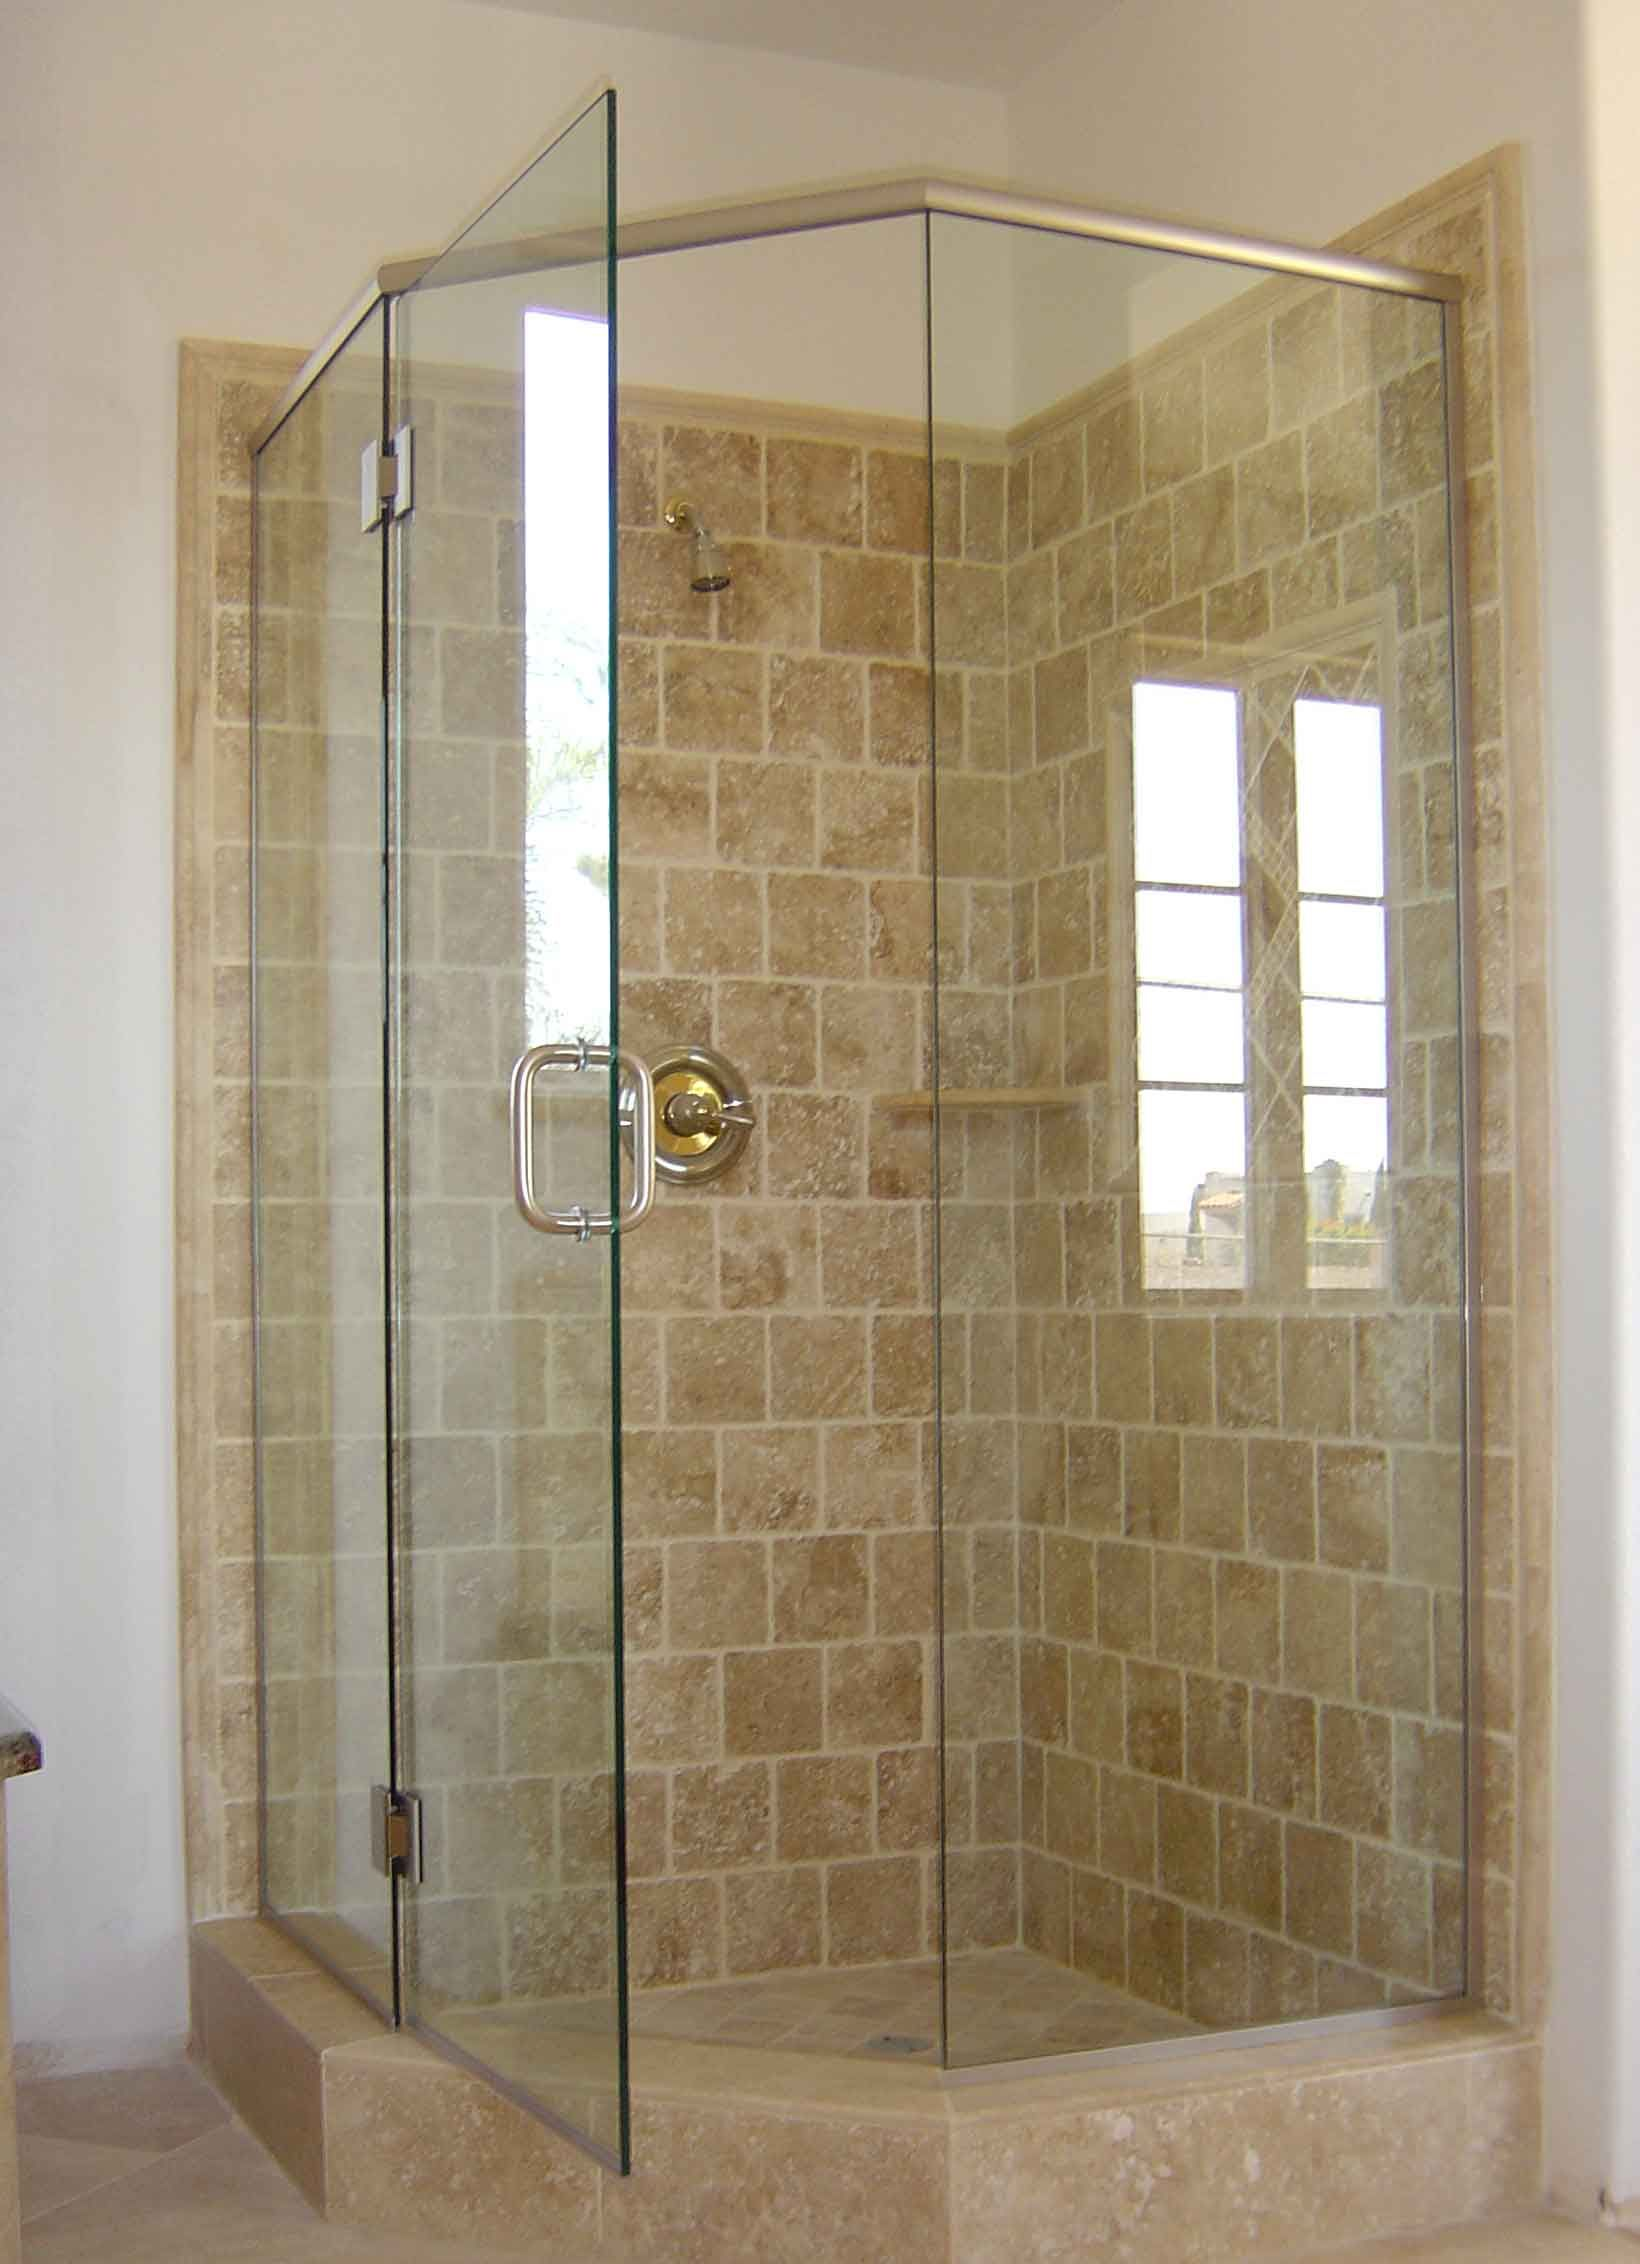 Upstairs bathroom corner shower pinteres Bathroom remodeling ideas shower stalls